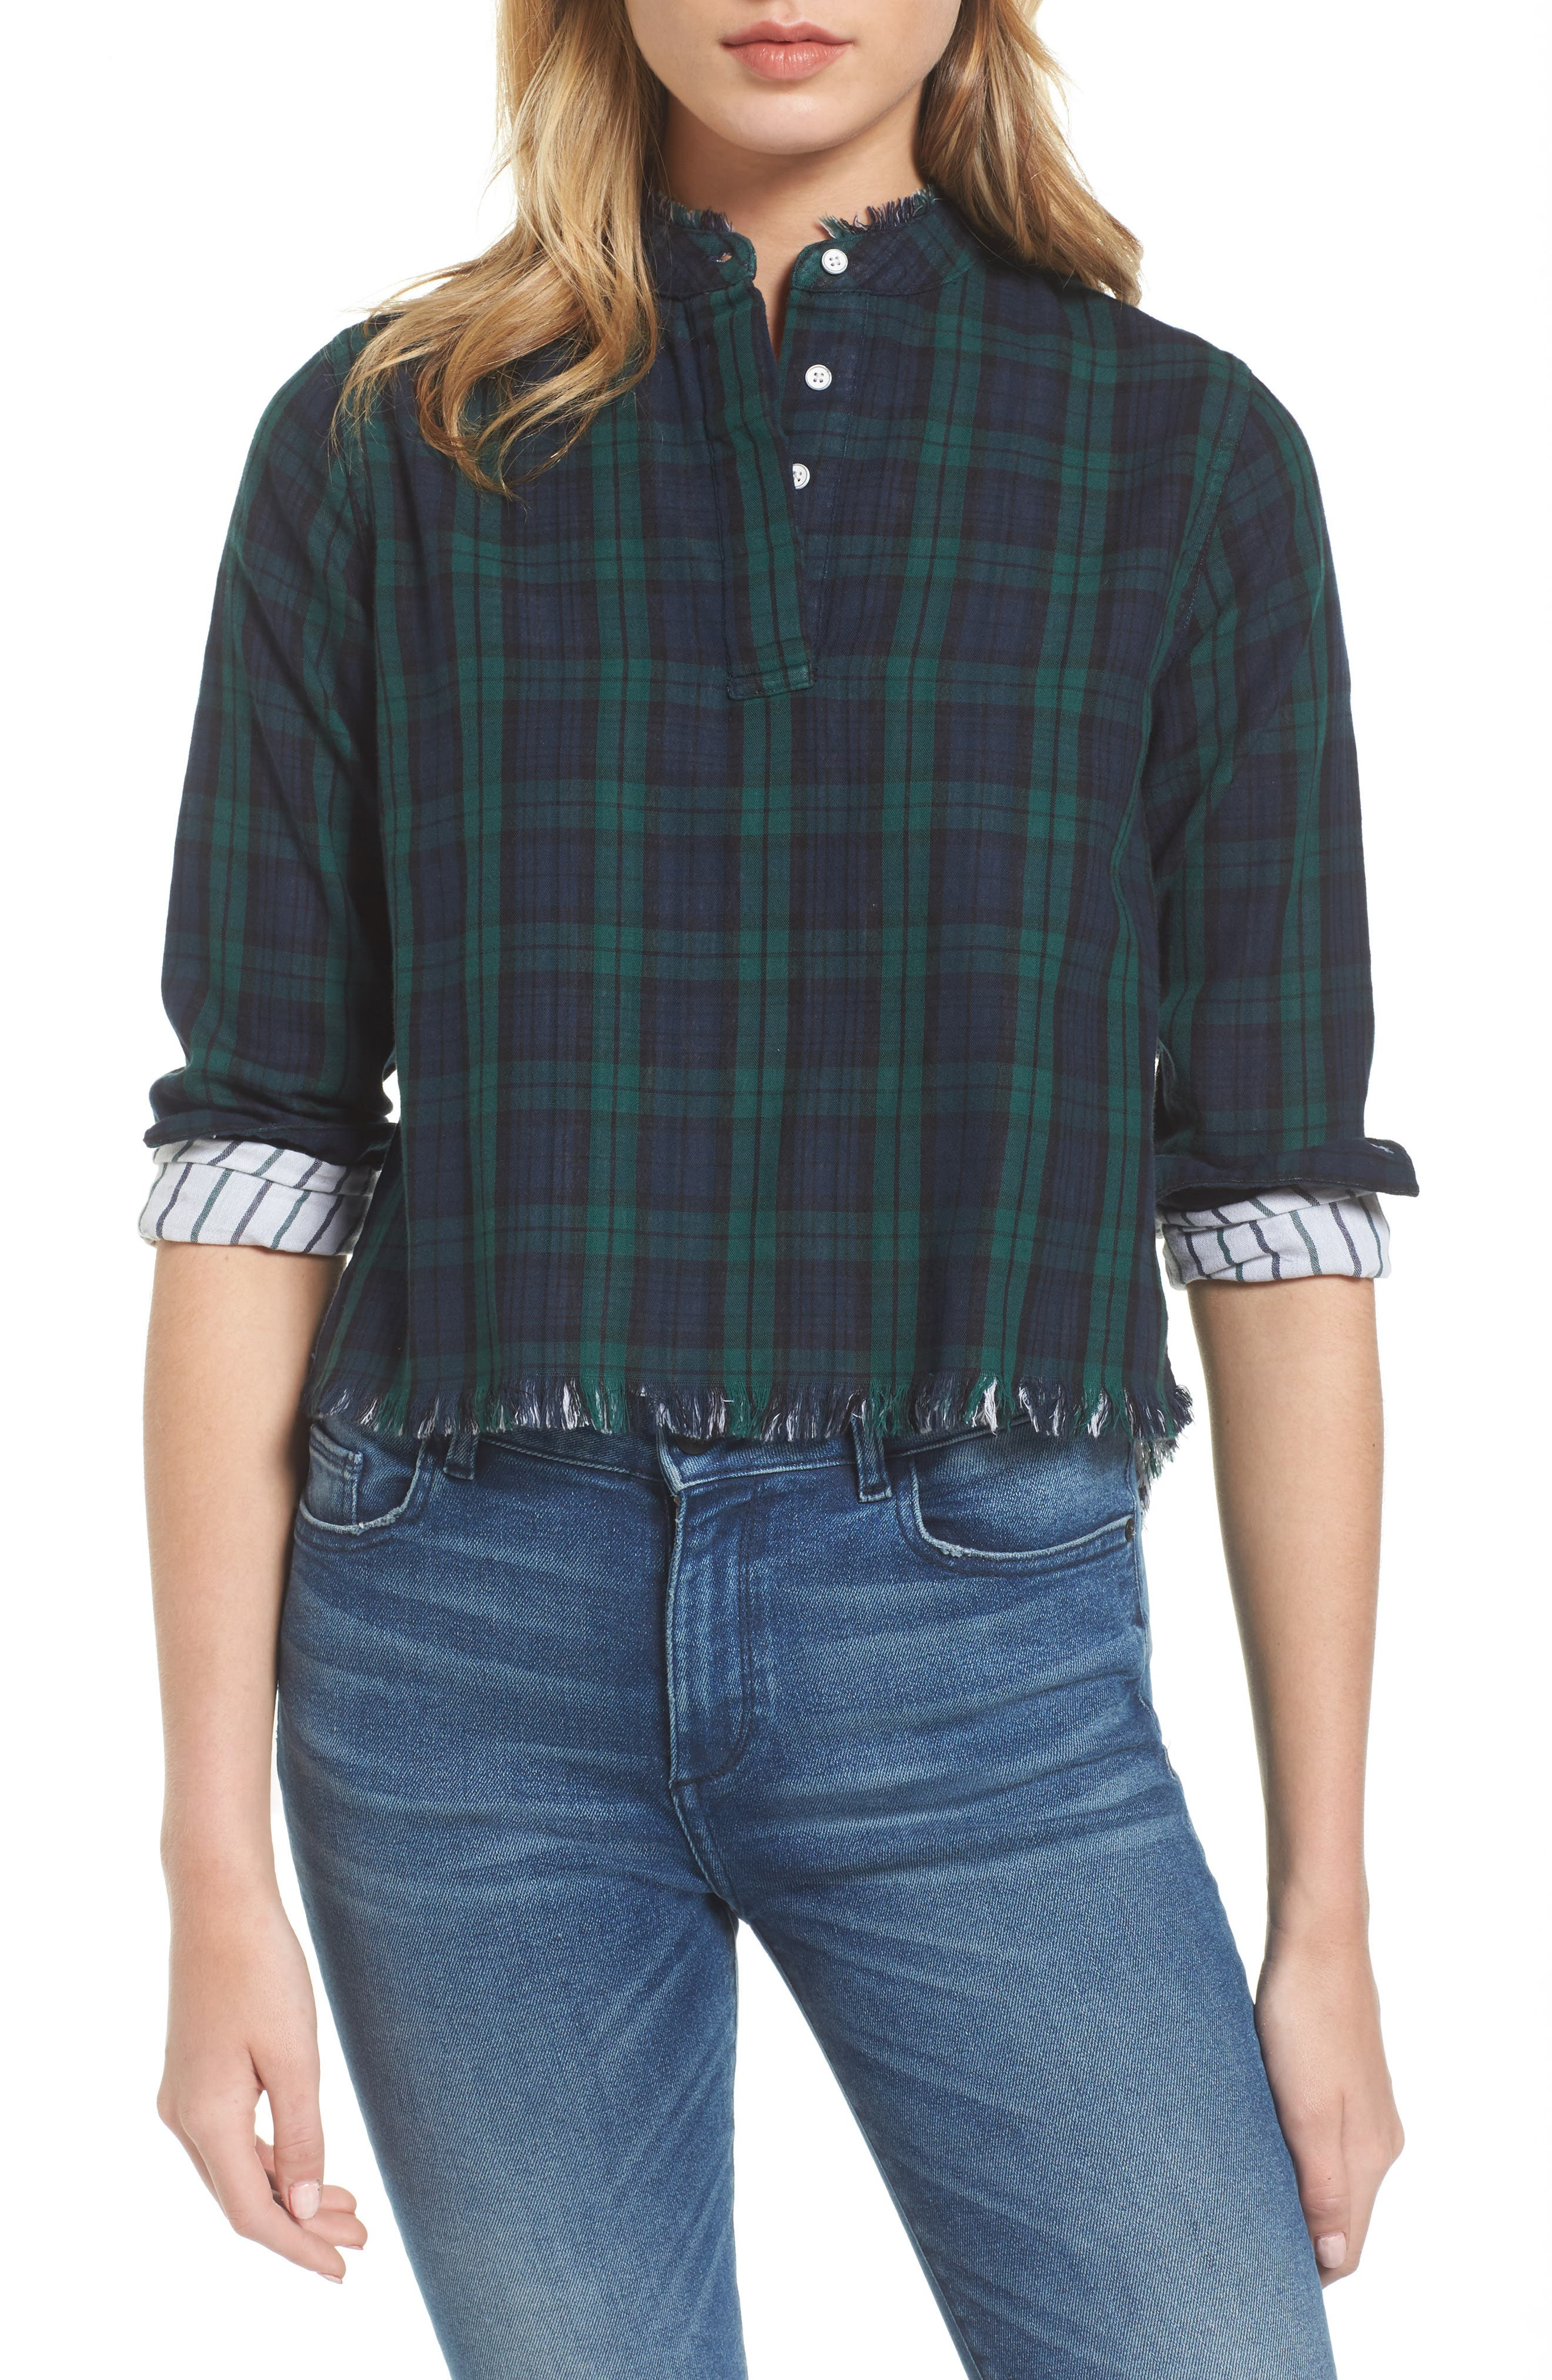 Alternate Image 1 Selected - DL1961 W 3rd & Sullivan Plaid Top